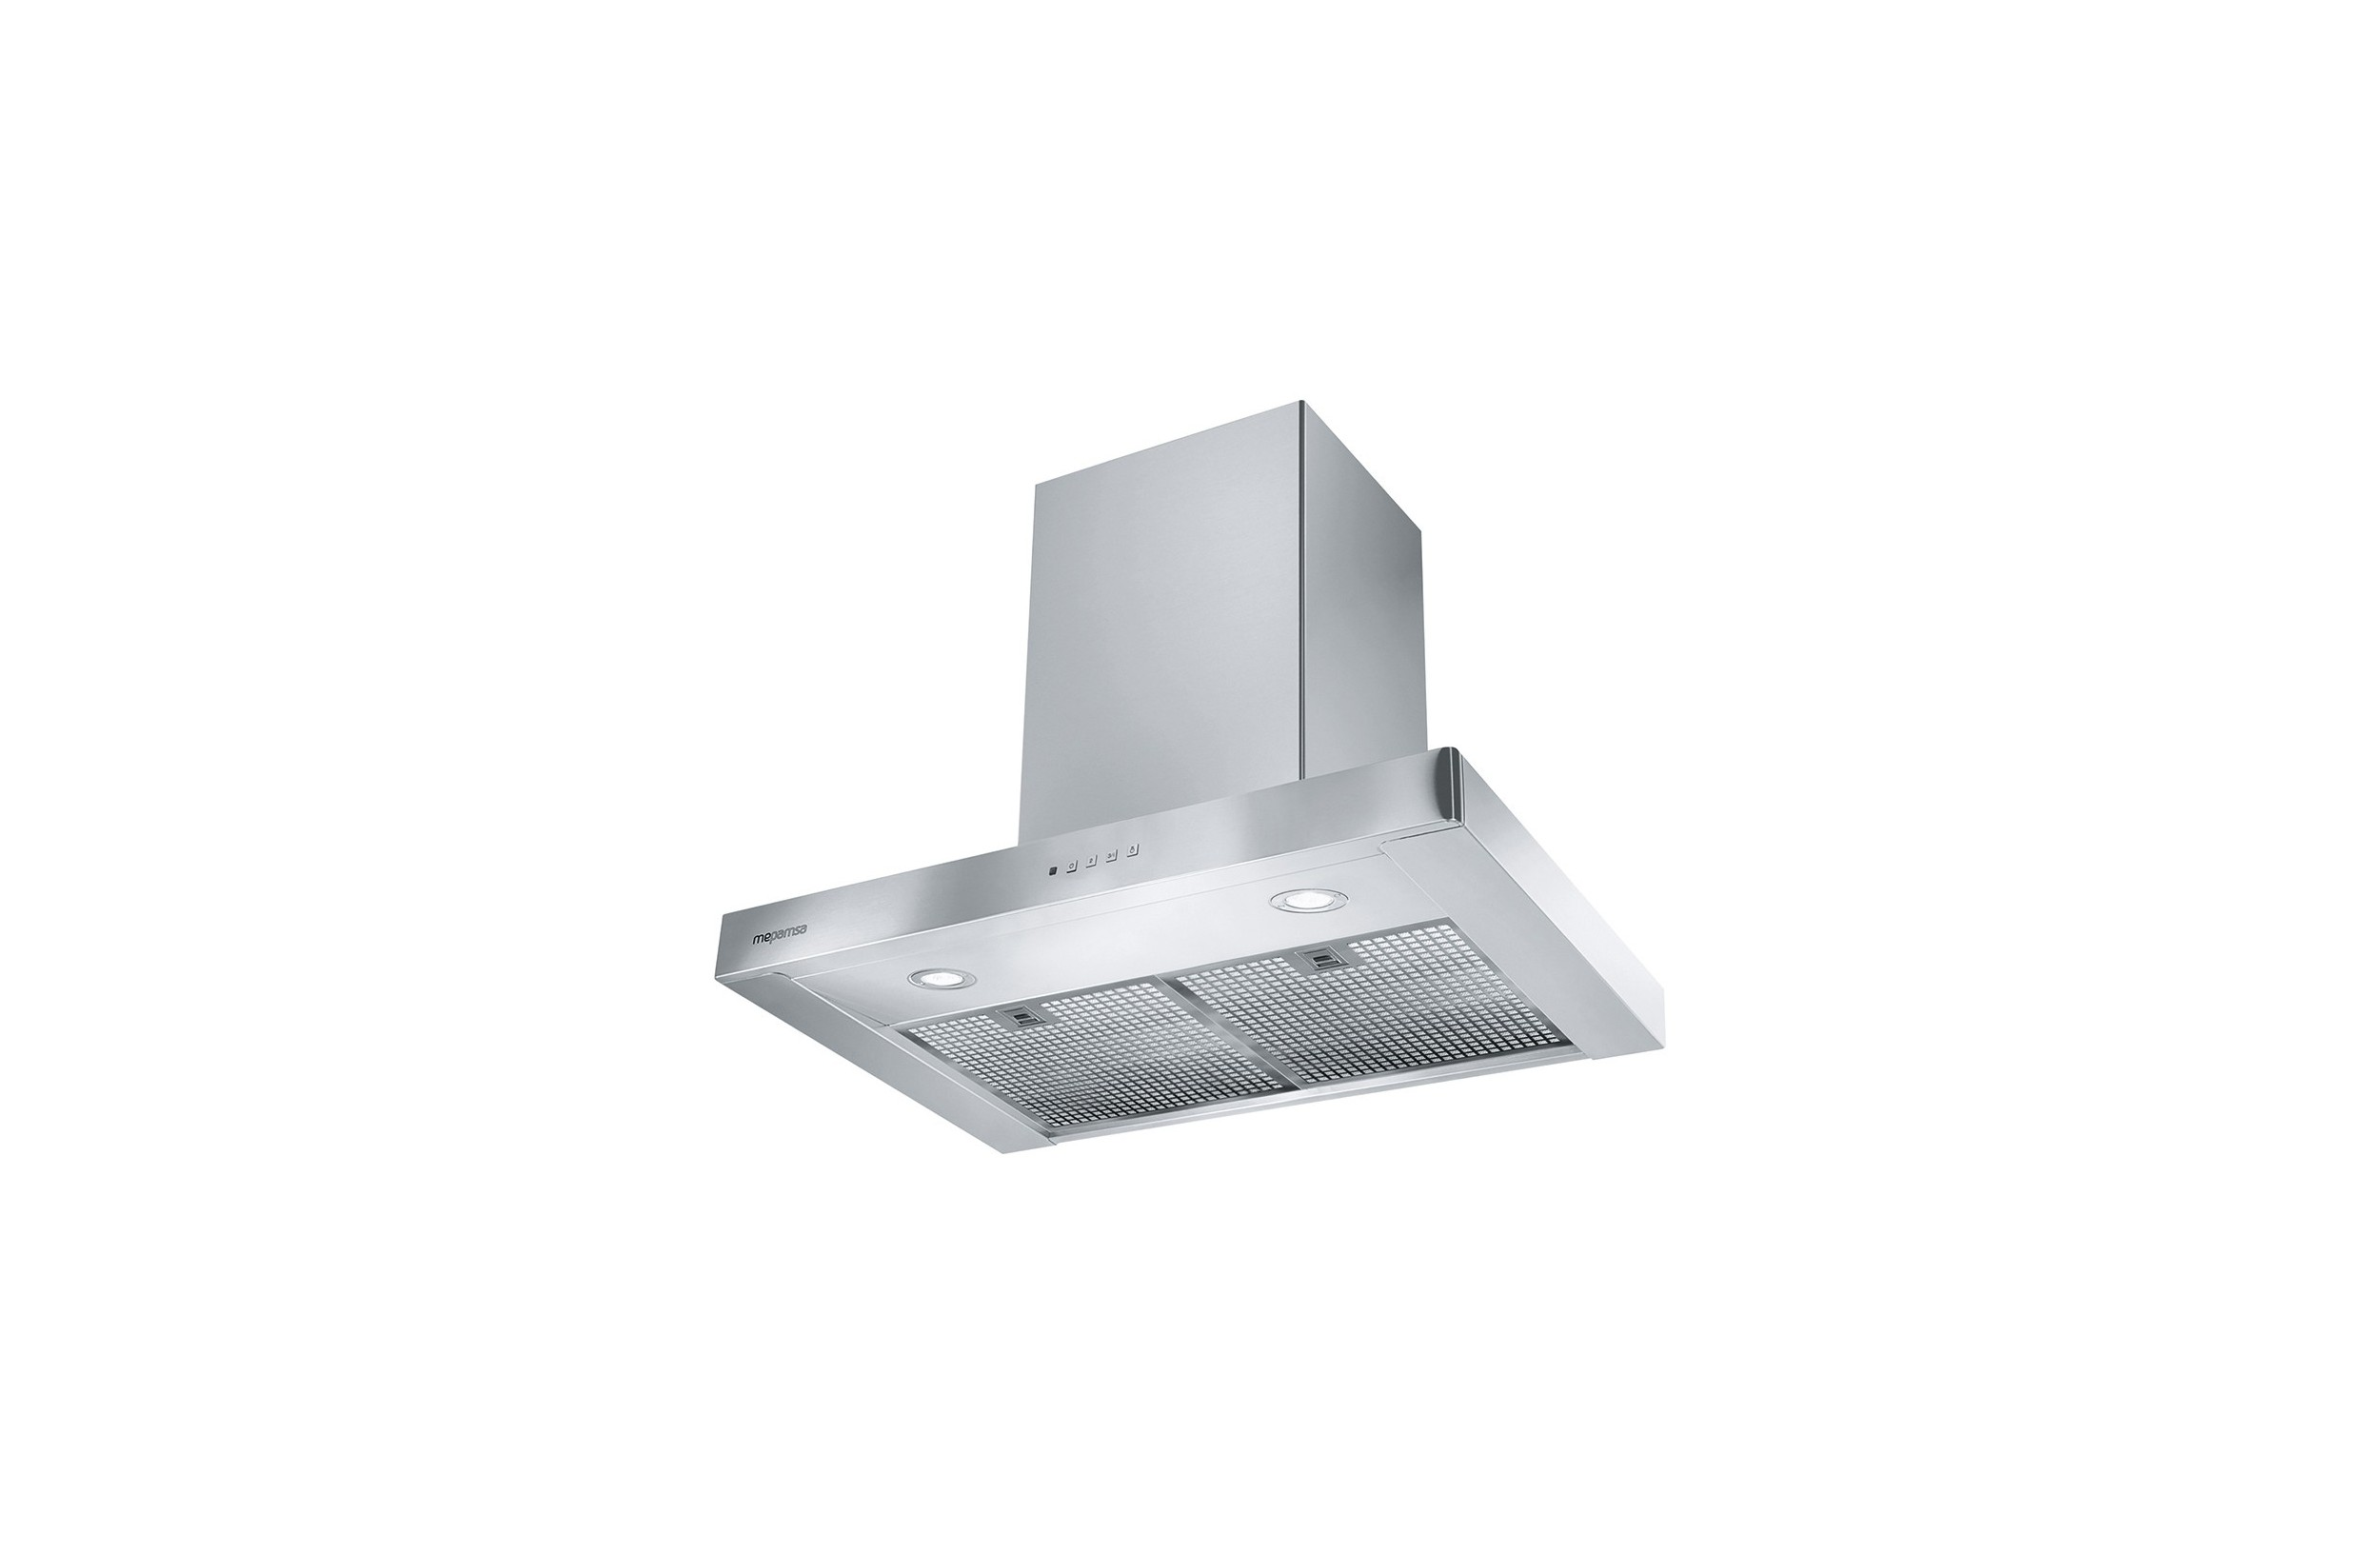 Ofertas Campanas Extractoras Decorativas Campana Mepamsa Stilo Green Power Gp 70 Inox Comprar